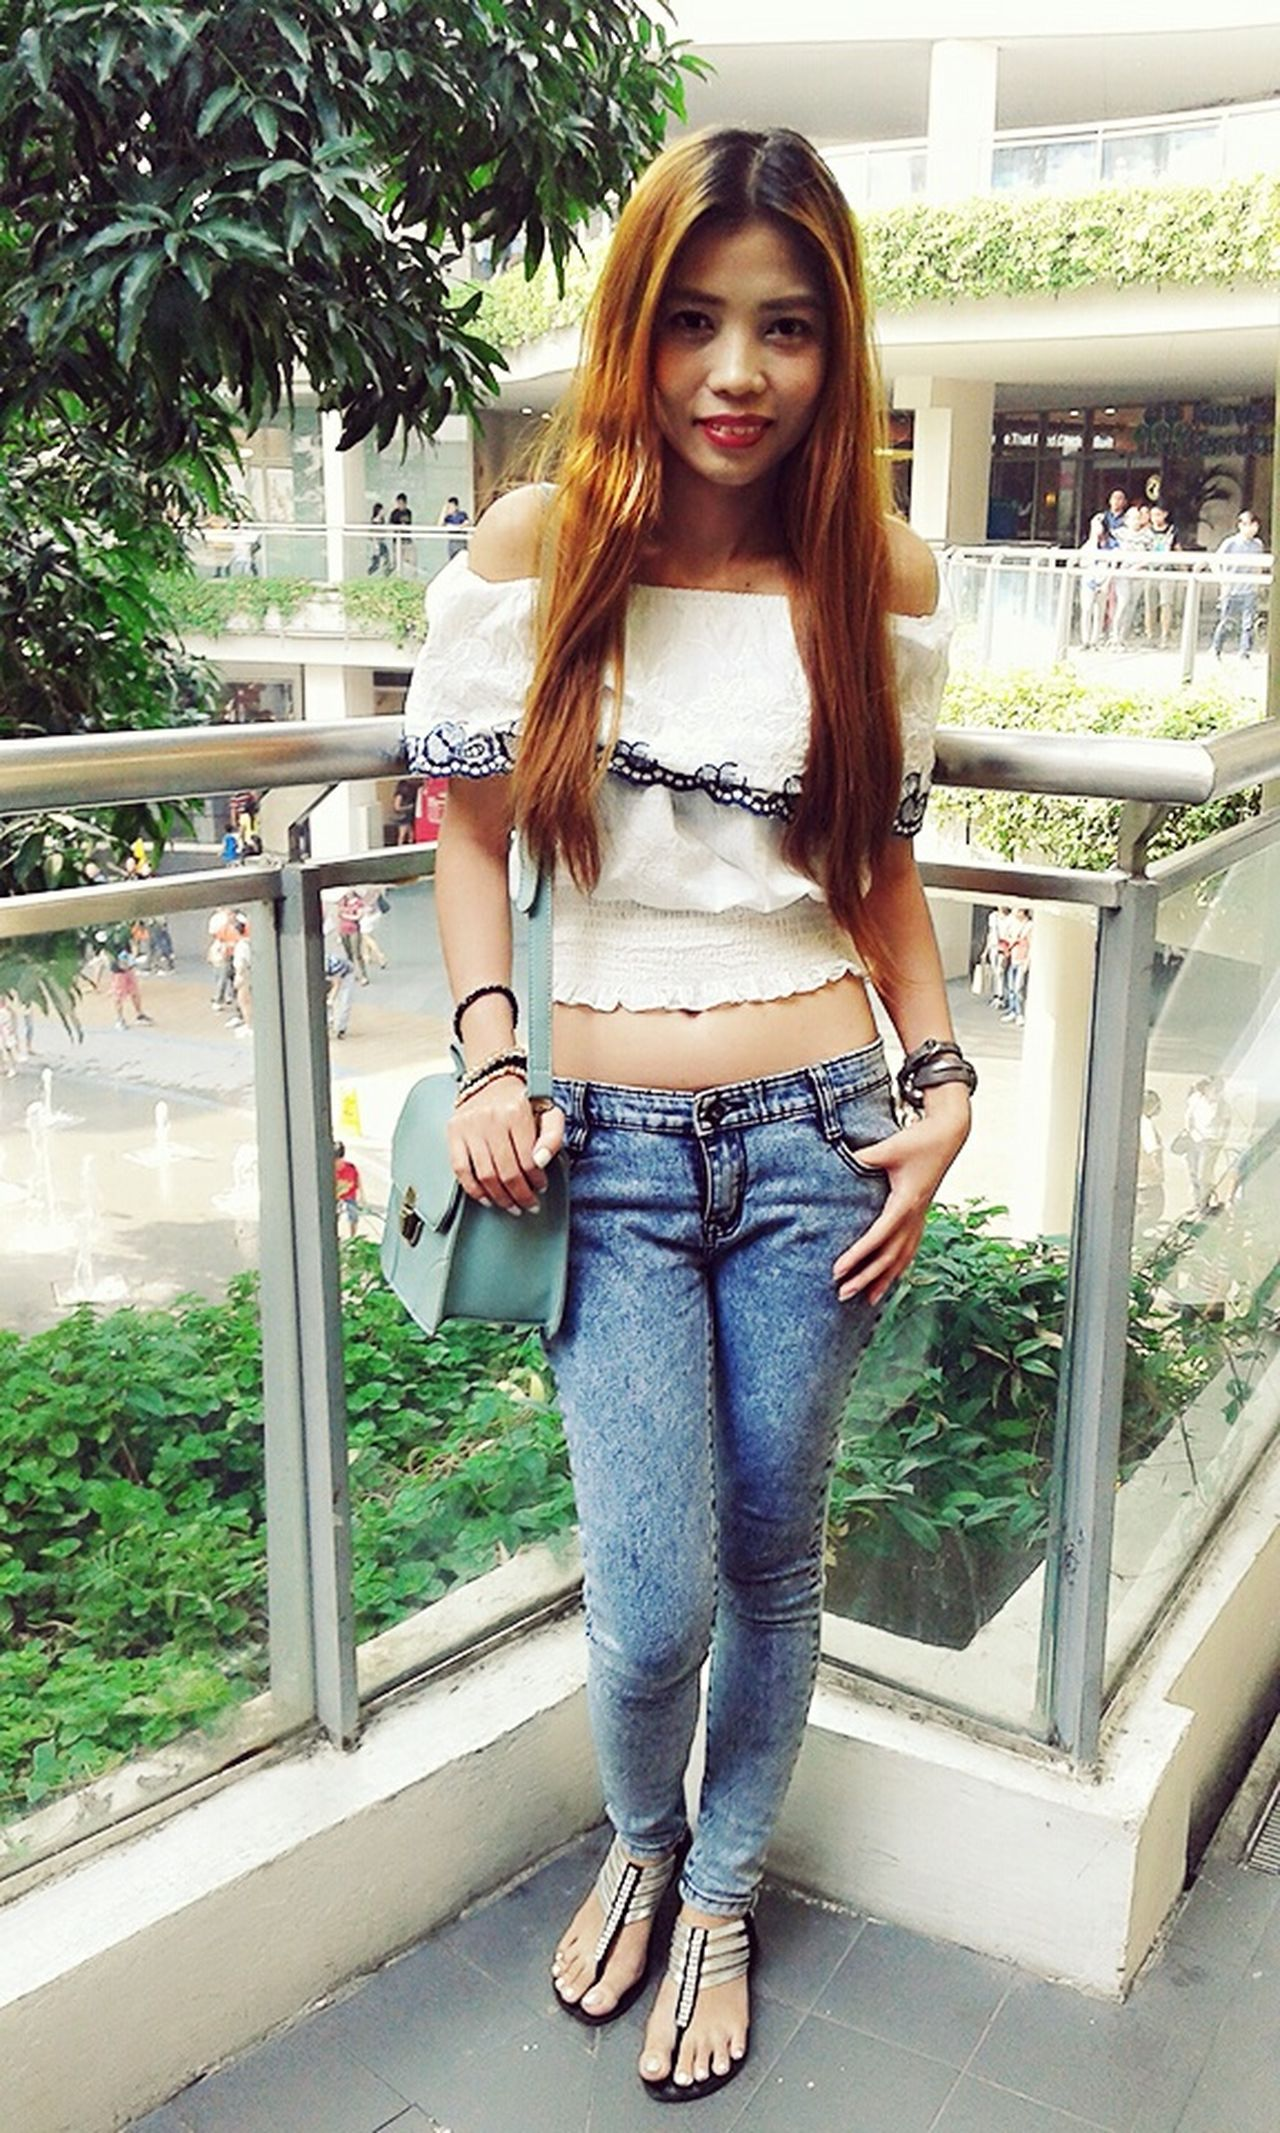 Hi! That's Me Ootd Casual Look Off Shoulder Top CropTop Skinny Jeans Blondehairdontcare Simply Pretty Keeping It Classy Express Yourself ❤ Be Yourself Me Time ♥ Beauty In Ordinary Things Simplicity Filipina Simplicity.  Just Chillin' My Blog http://jennyfashionillustration.jimdo.com